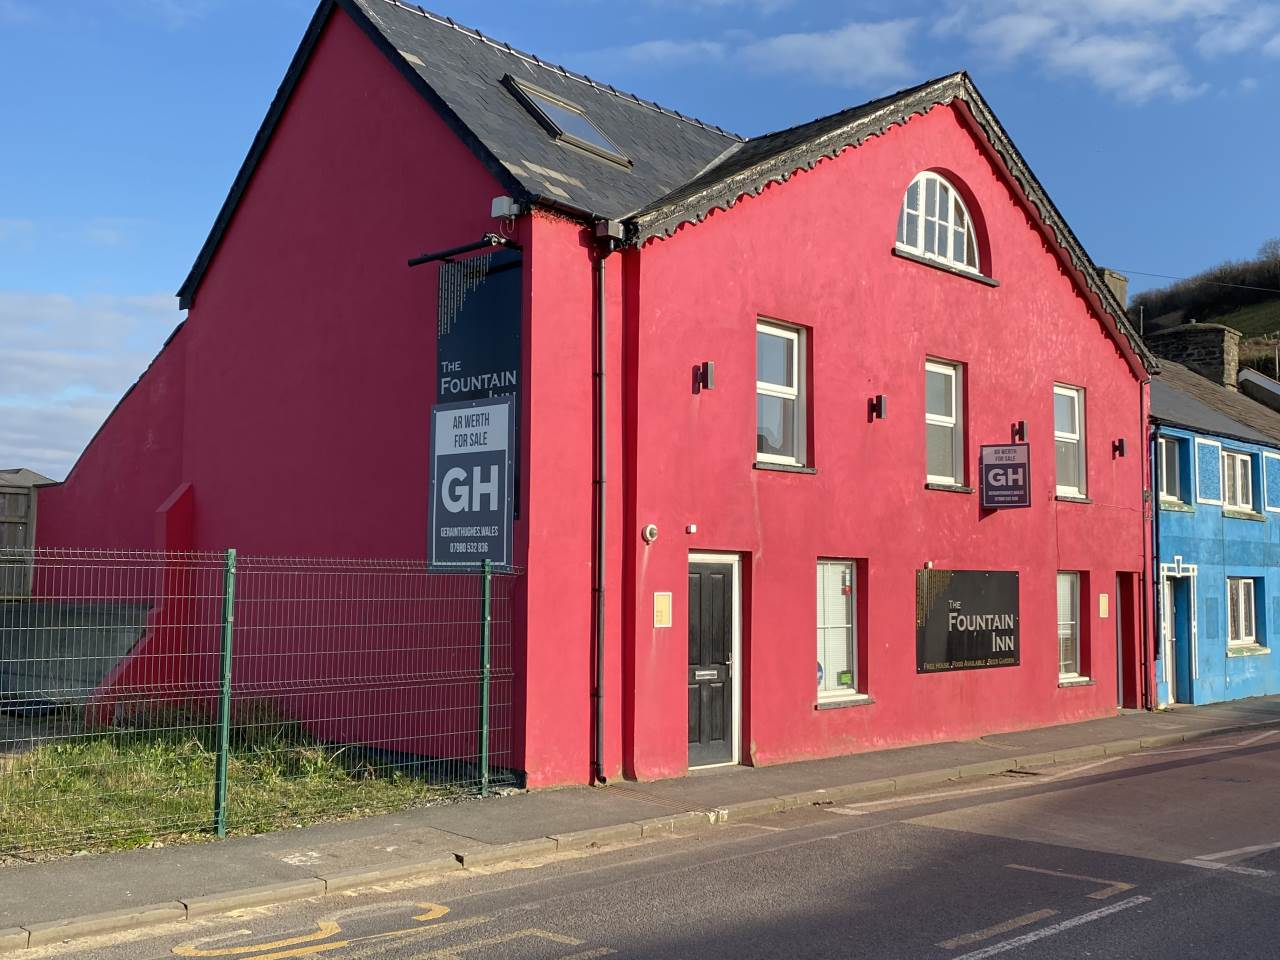 Commercial property for sale in Trefechan, Aberystwyth, SY23